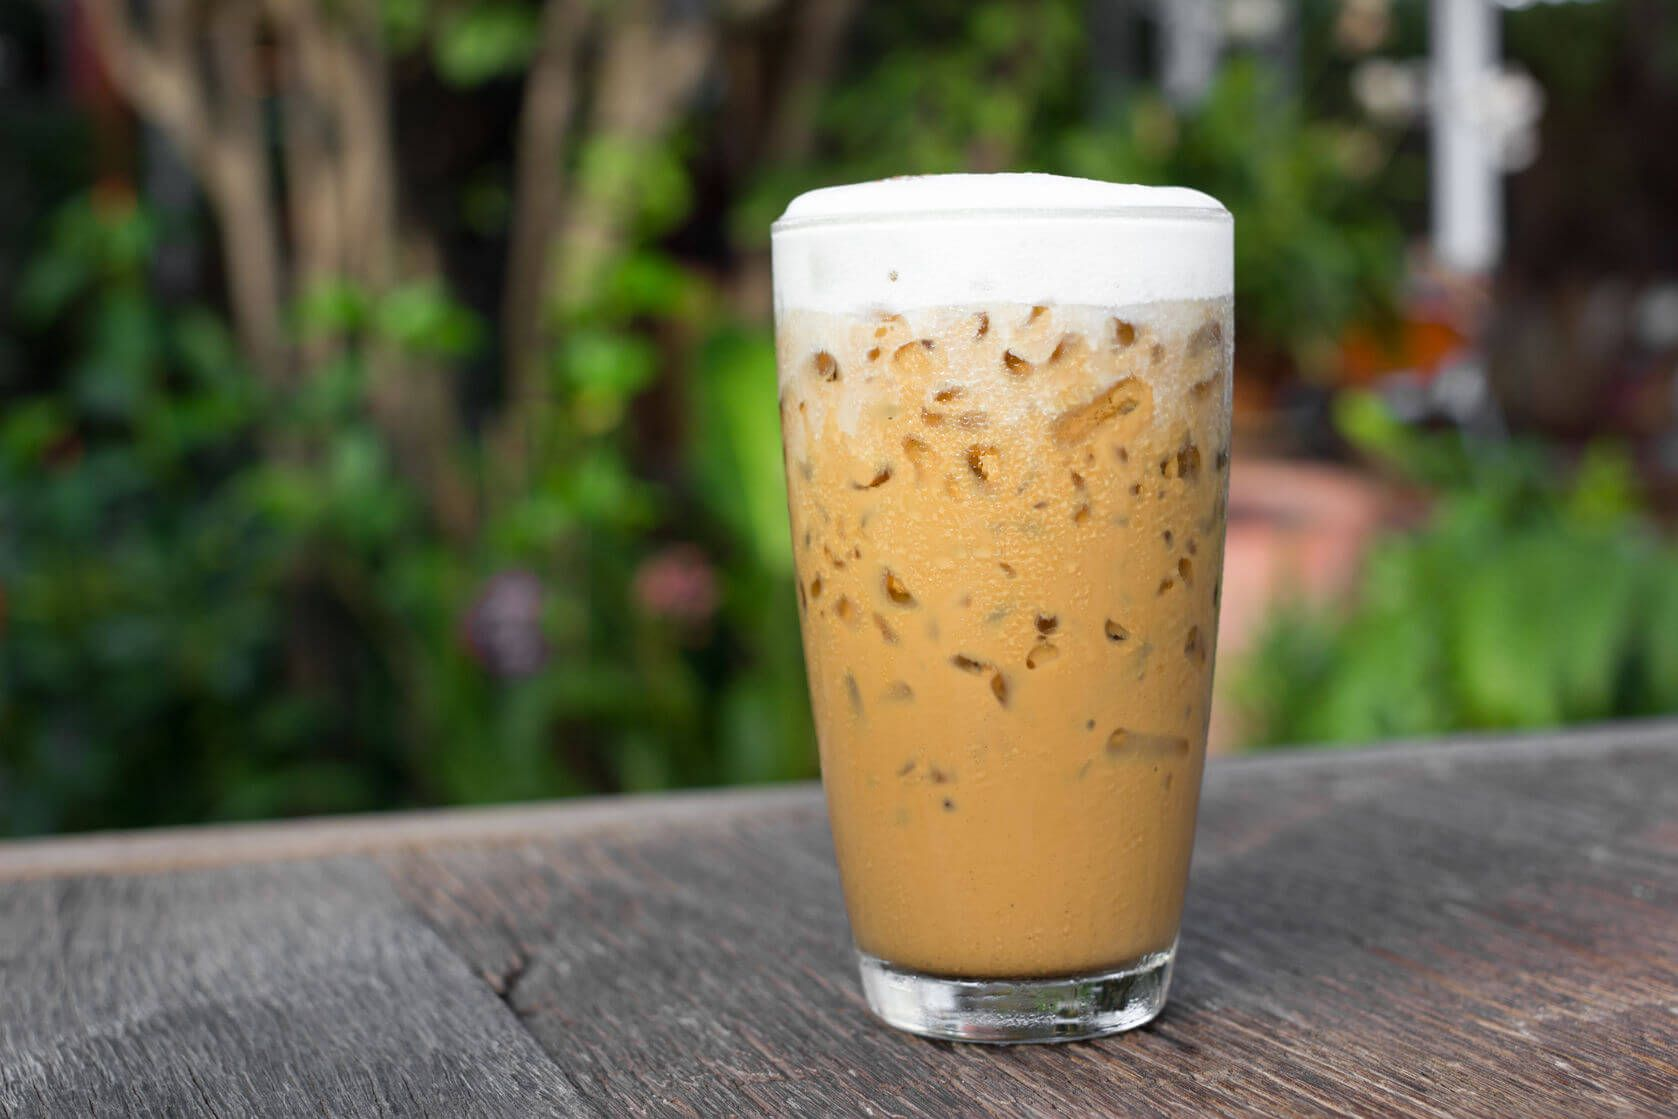 The Paleo Mocha Frappe made with cold brew coffee is great if you're on a health binge and you want to make some changes to your diet.